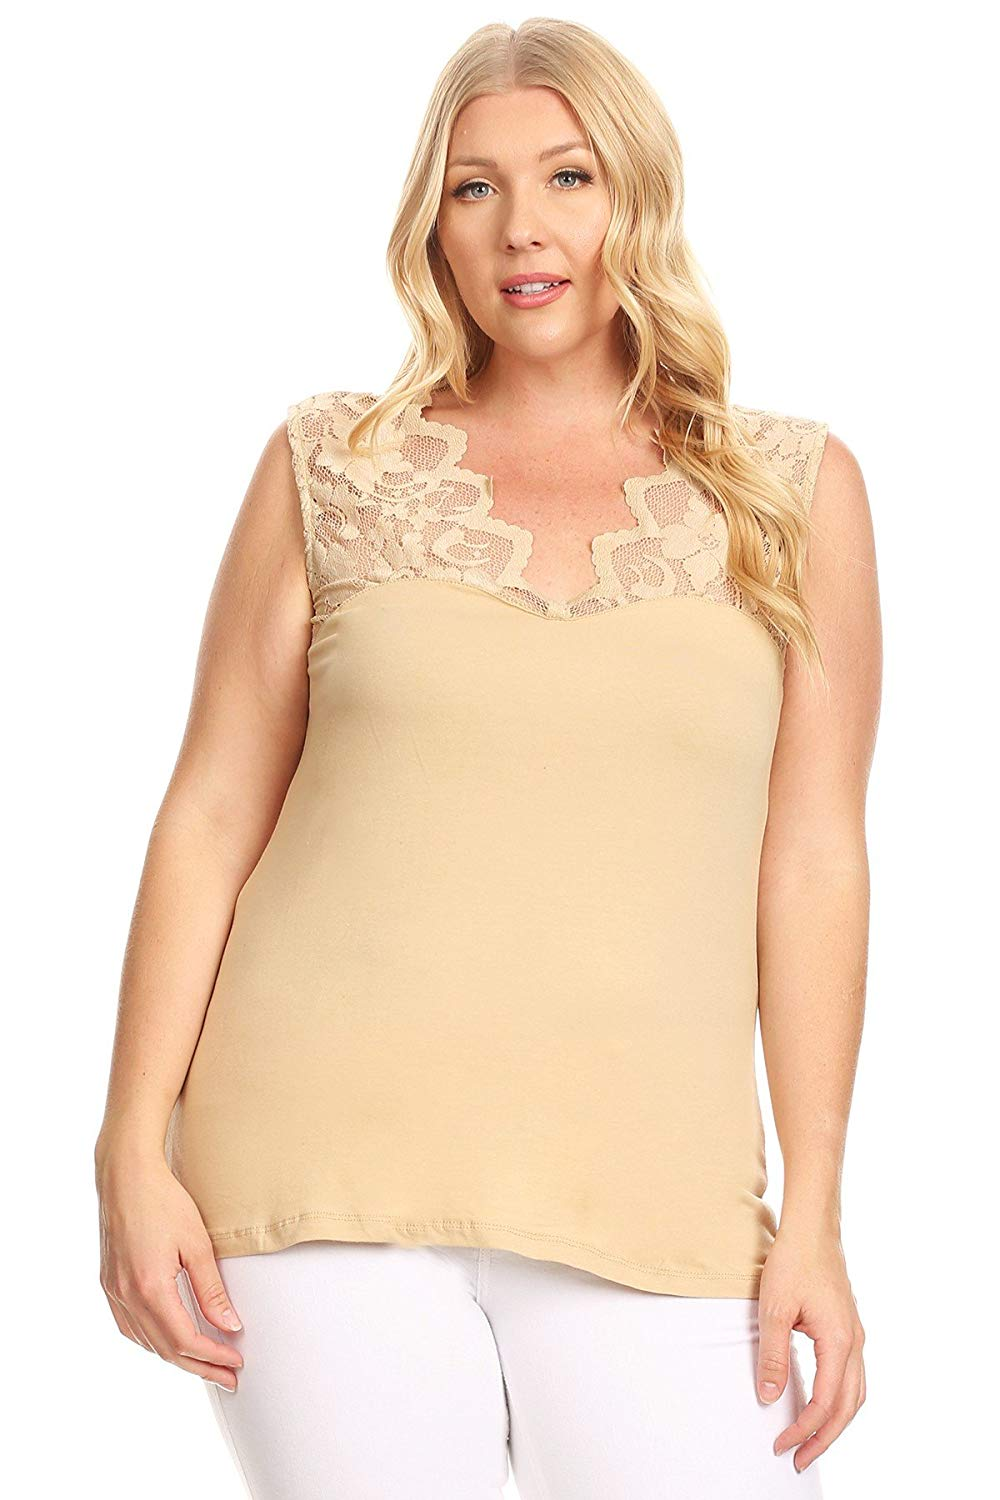 Ambiance Apparel Women's Plus Size Lace Sleeveless Solid Knit Contrast Top